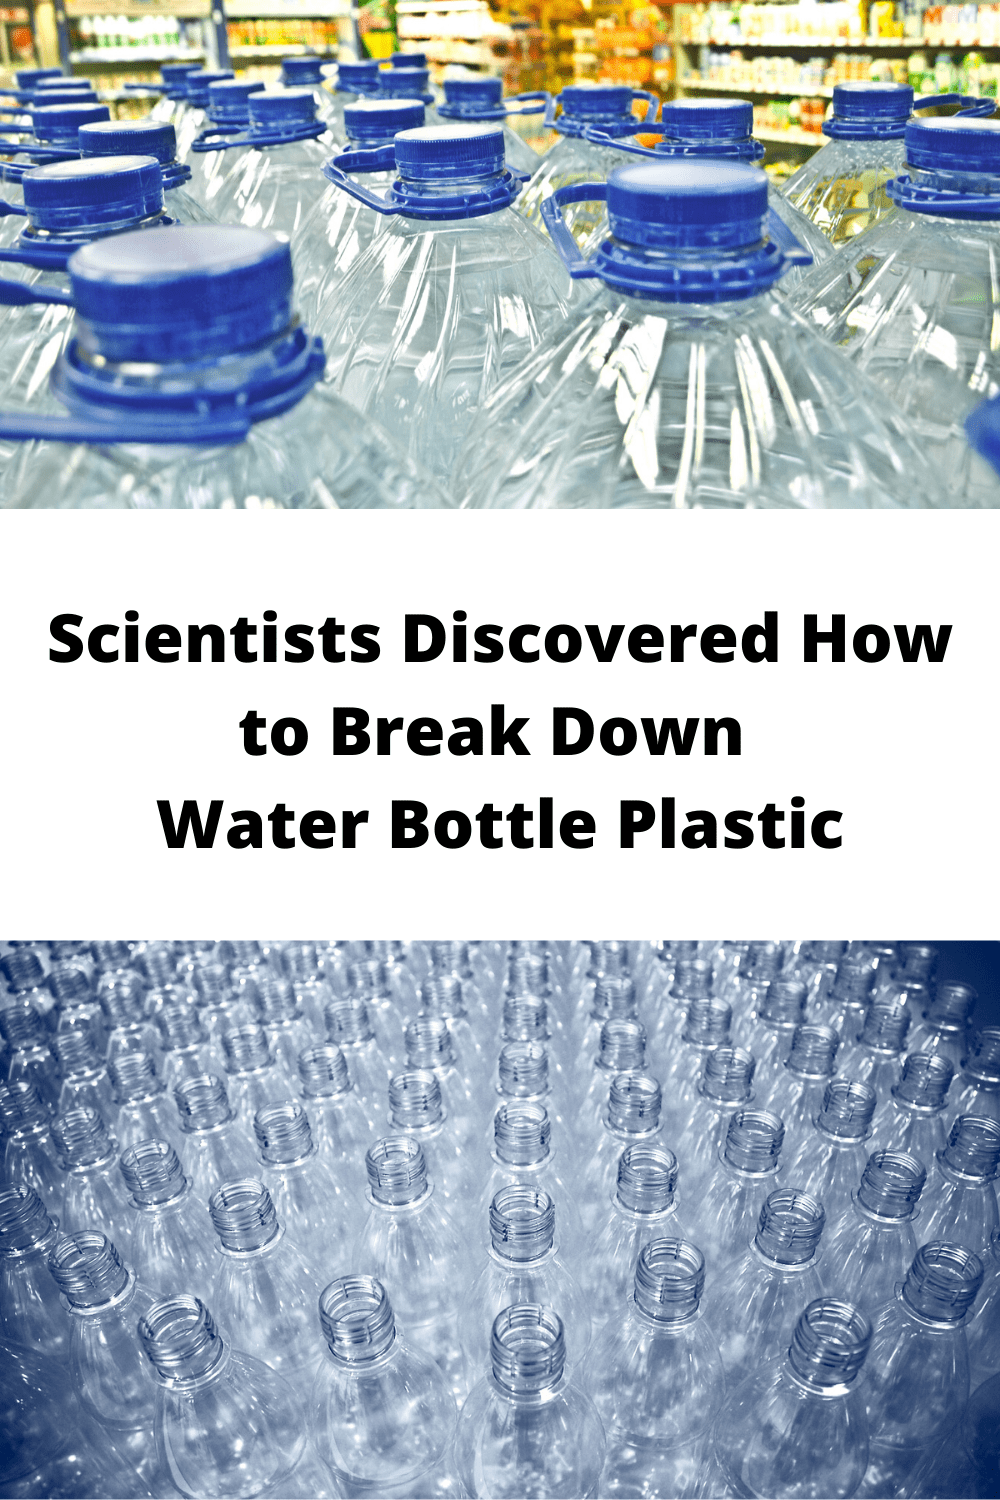 Scientists Discovered How to Break Down Water Bottle Plastic